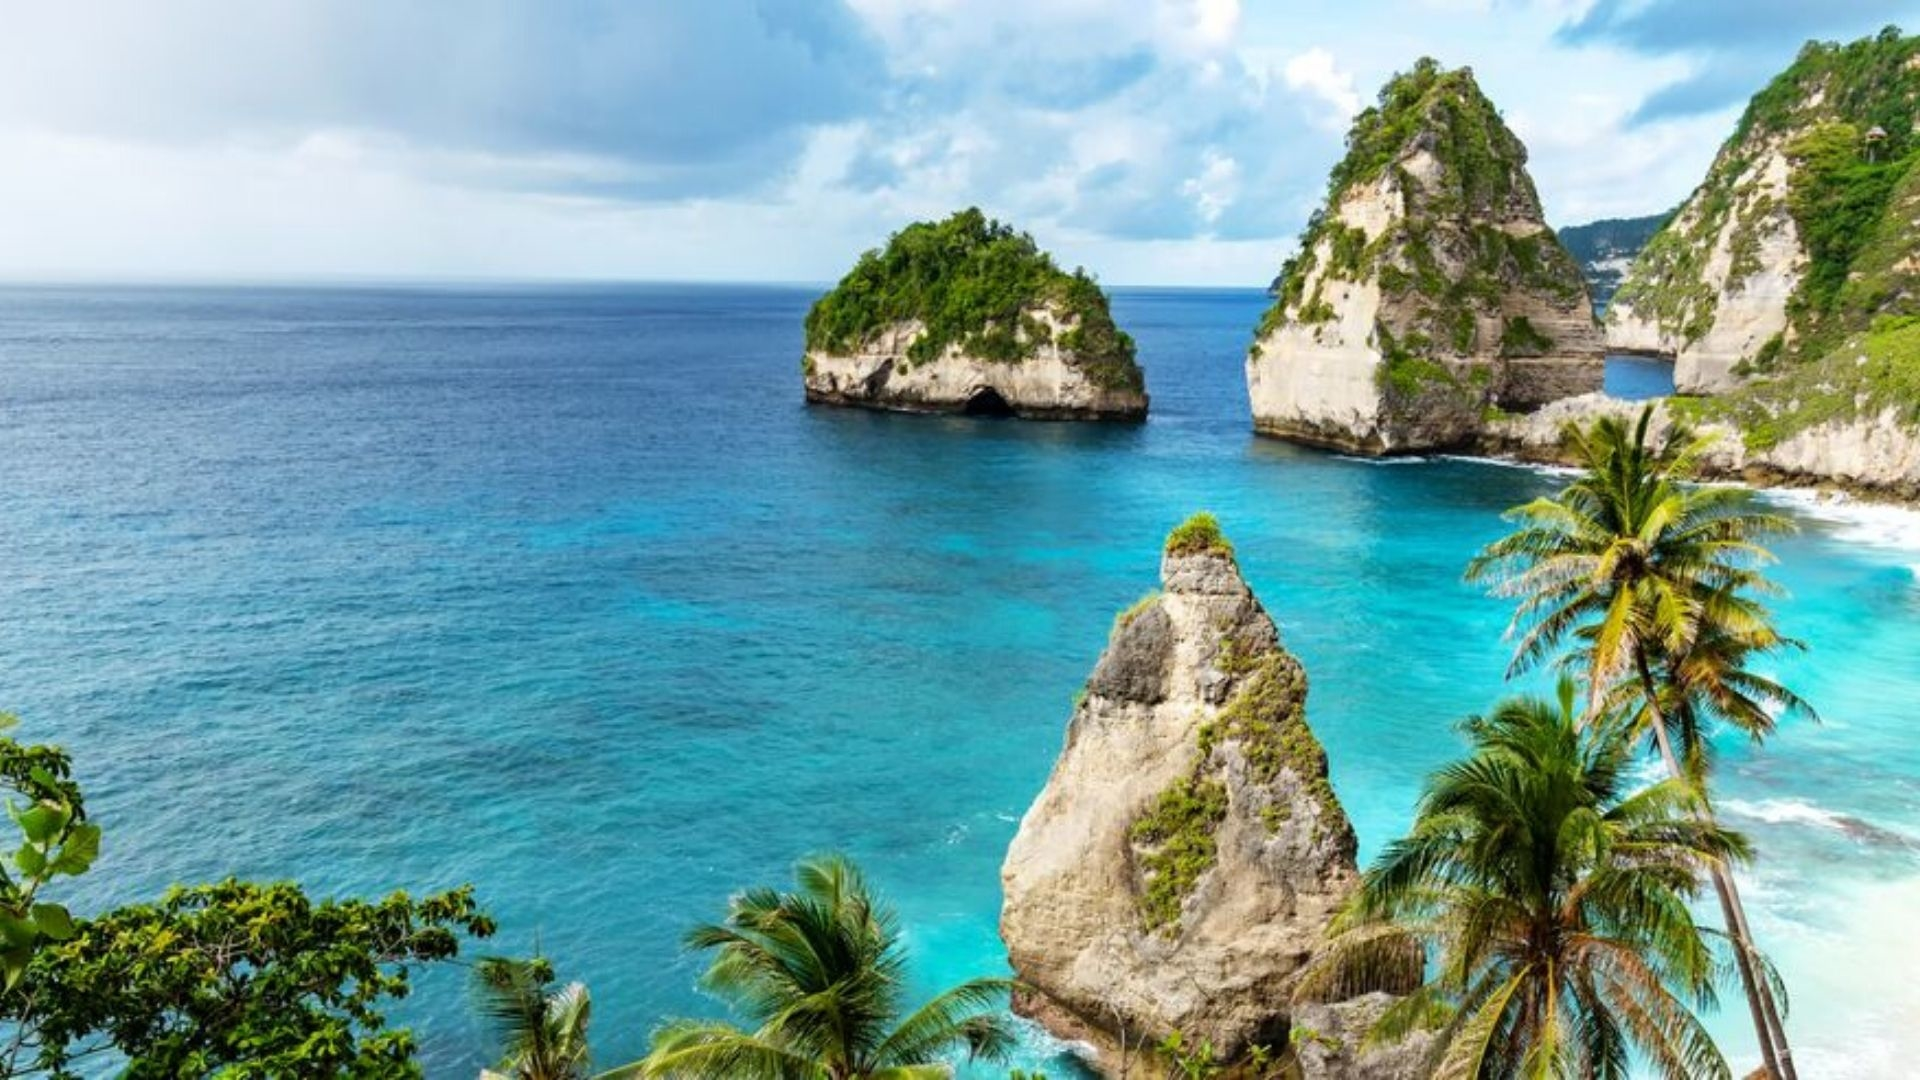 7 Travel Destinations To Avoid In 2020